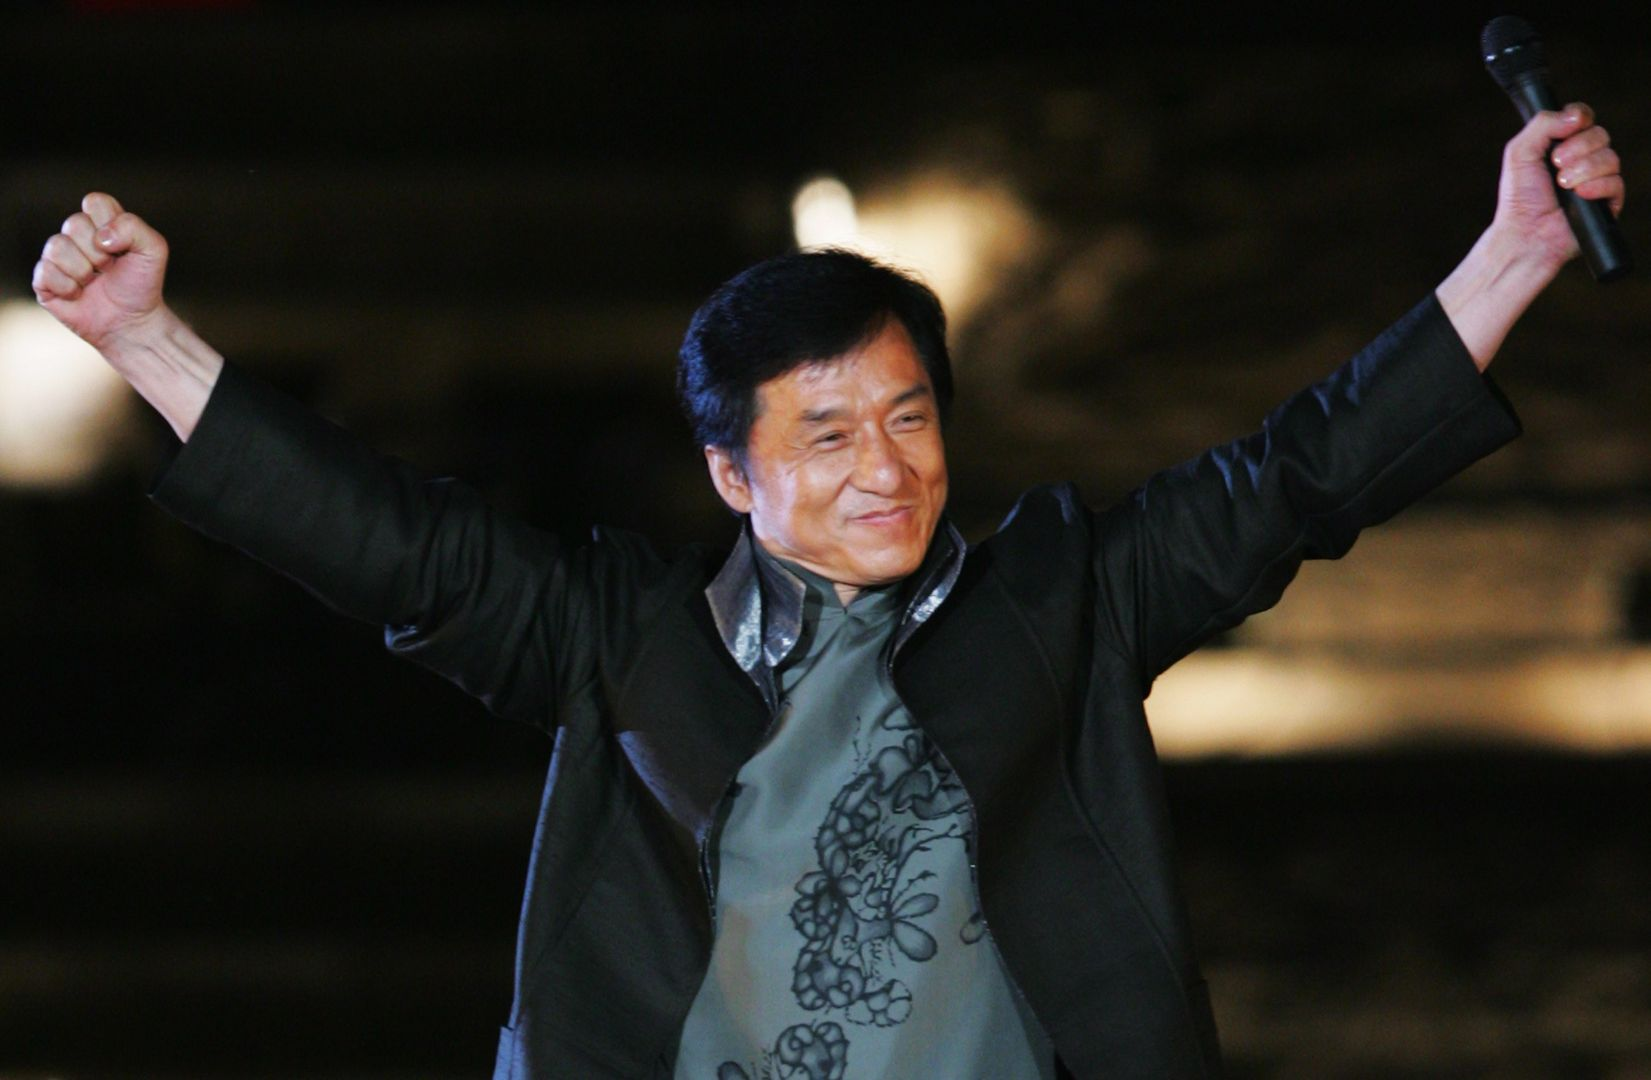 BEIJING - APRIL 30: Hong Kong's star Jackie Chan performs during the Award-giving Ceremony for the fourtth Olympic Songs Competition at the illuminated Worker People's Cultural Palace, the Imperial Ancestral Temple inside the Forbidden City, on April 30, 2008 in Beijing, China. Various activities, including an international long distance race, a song festival, a grand evening and an international speed-walking race, will be held in Beijing to celebrate the 100-day mark which falls on April 30. (Photo by Feng Li/Getty Images)